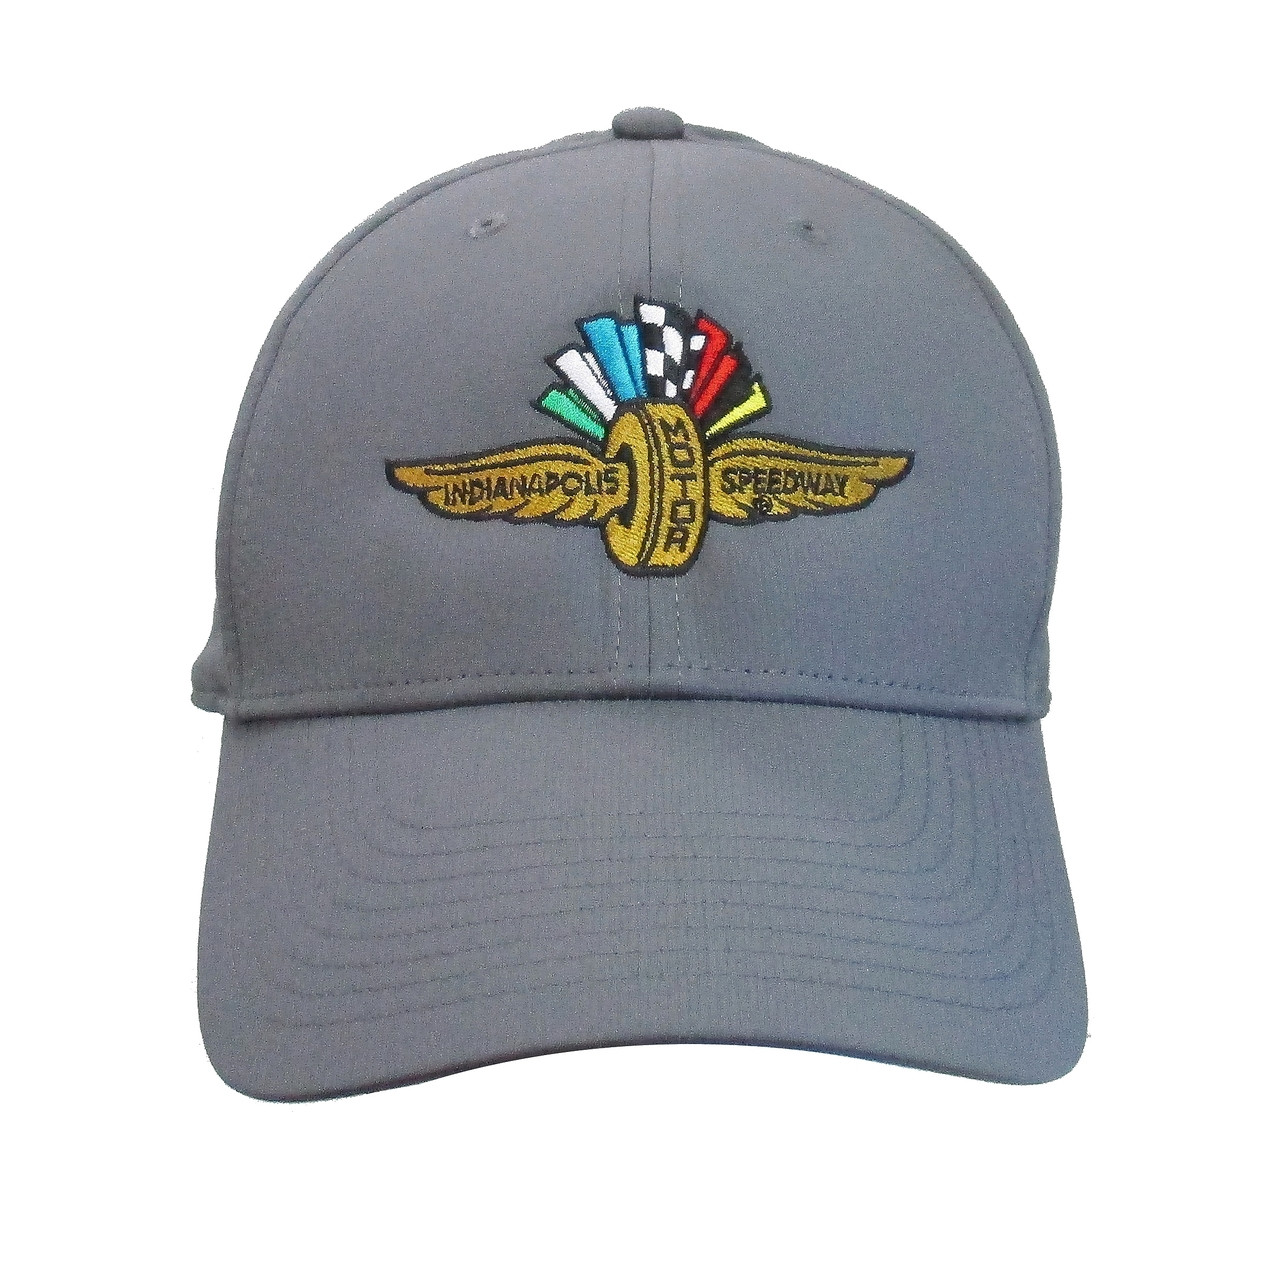 84252fe71bdf Wing Wheel and Flag Nike Dark Grey Cap - Indianapolis Motor Speedway INDYCAR